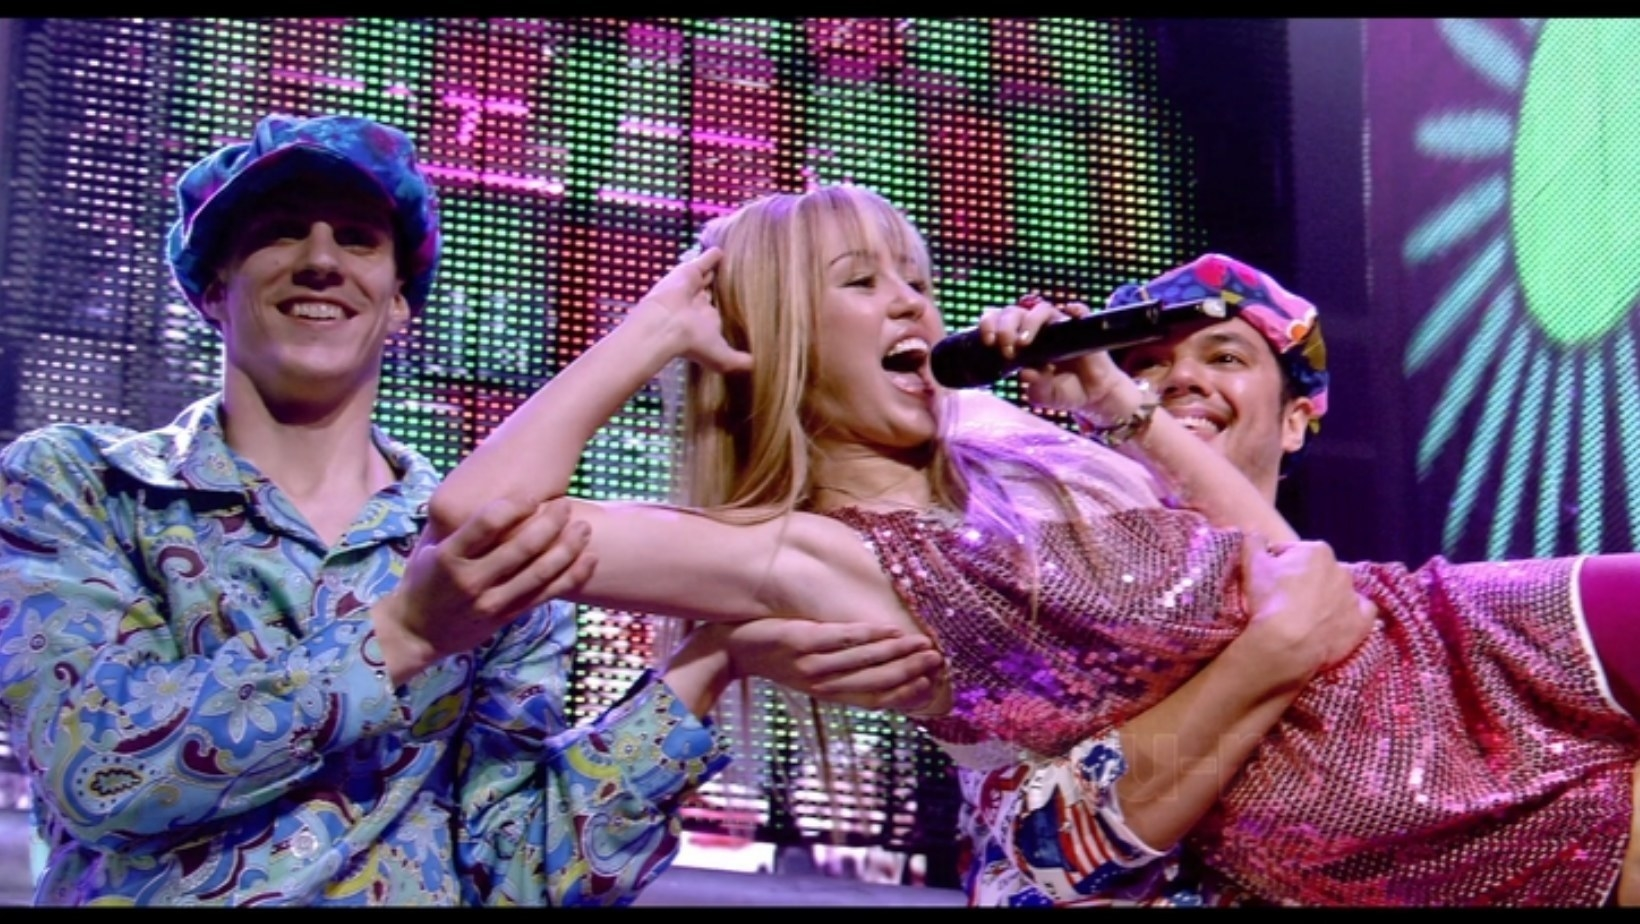 Hannah Montana lies on her side and sings while two people hold her up in the air